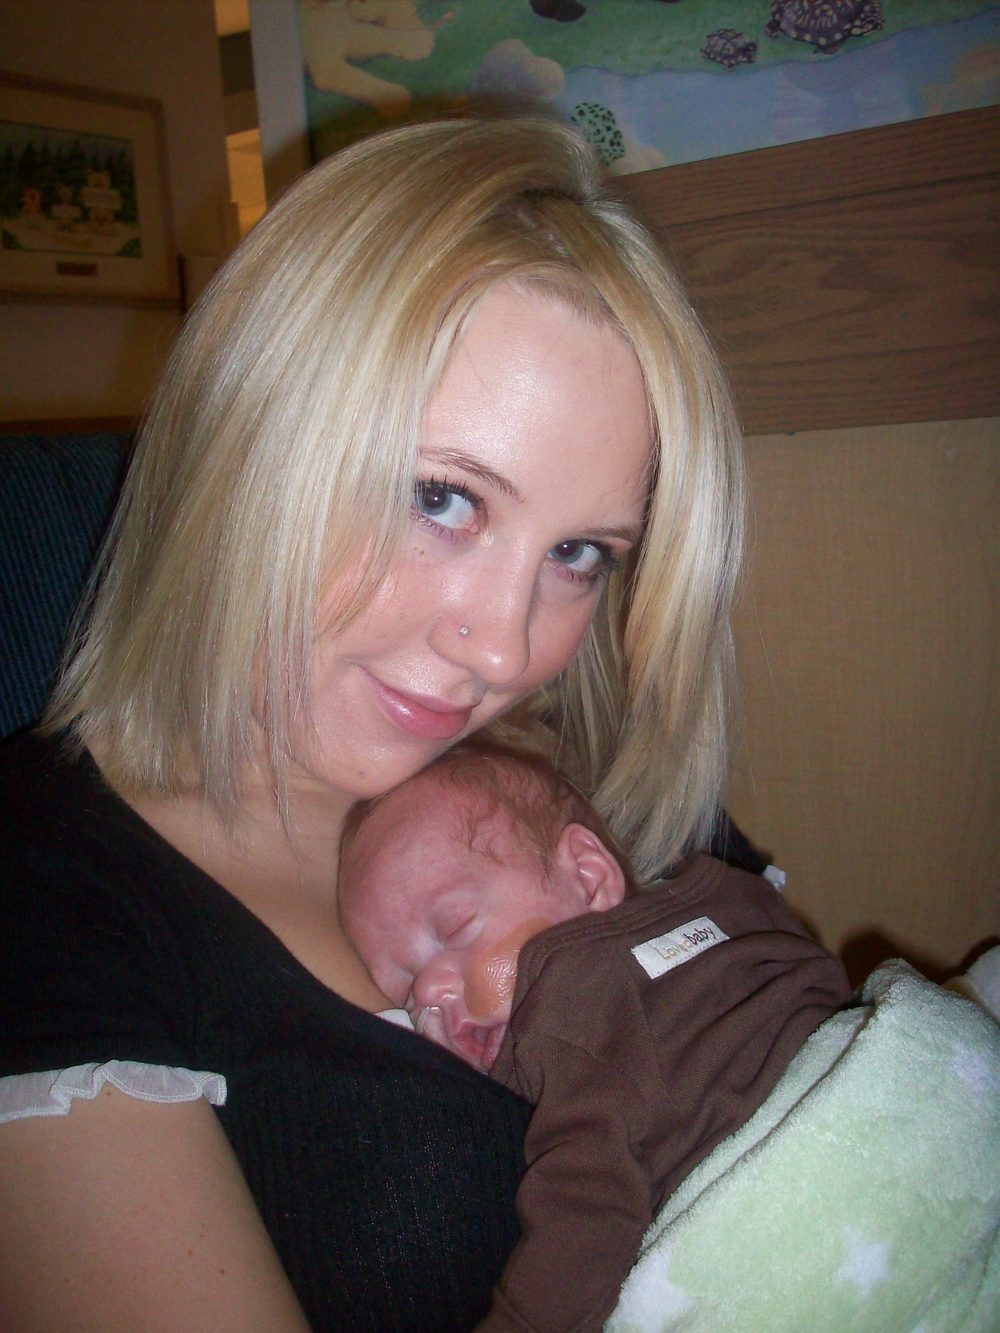 this was in october 2008 once Lincoln was stable and well at Rockyview NICU now, he was 3 pounds and finally gainging weight:)